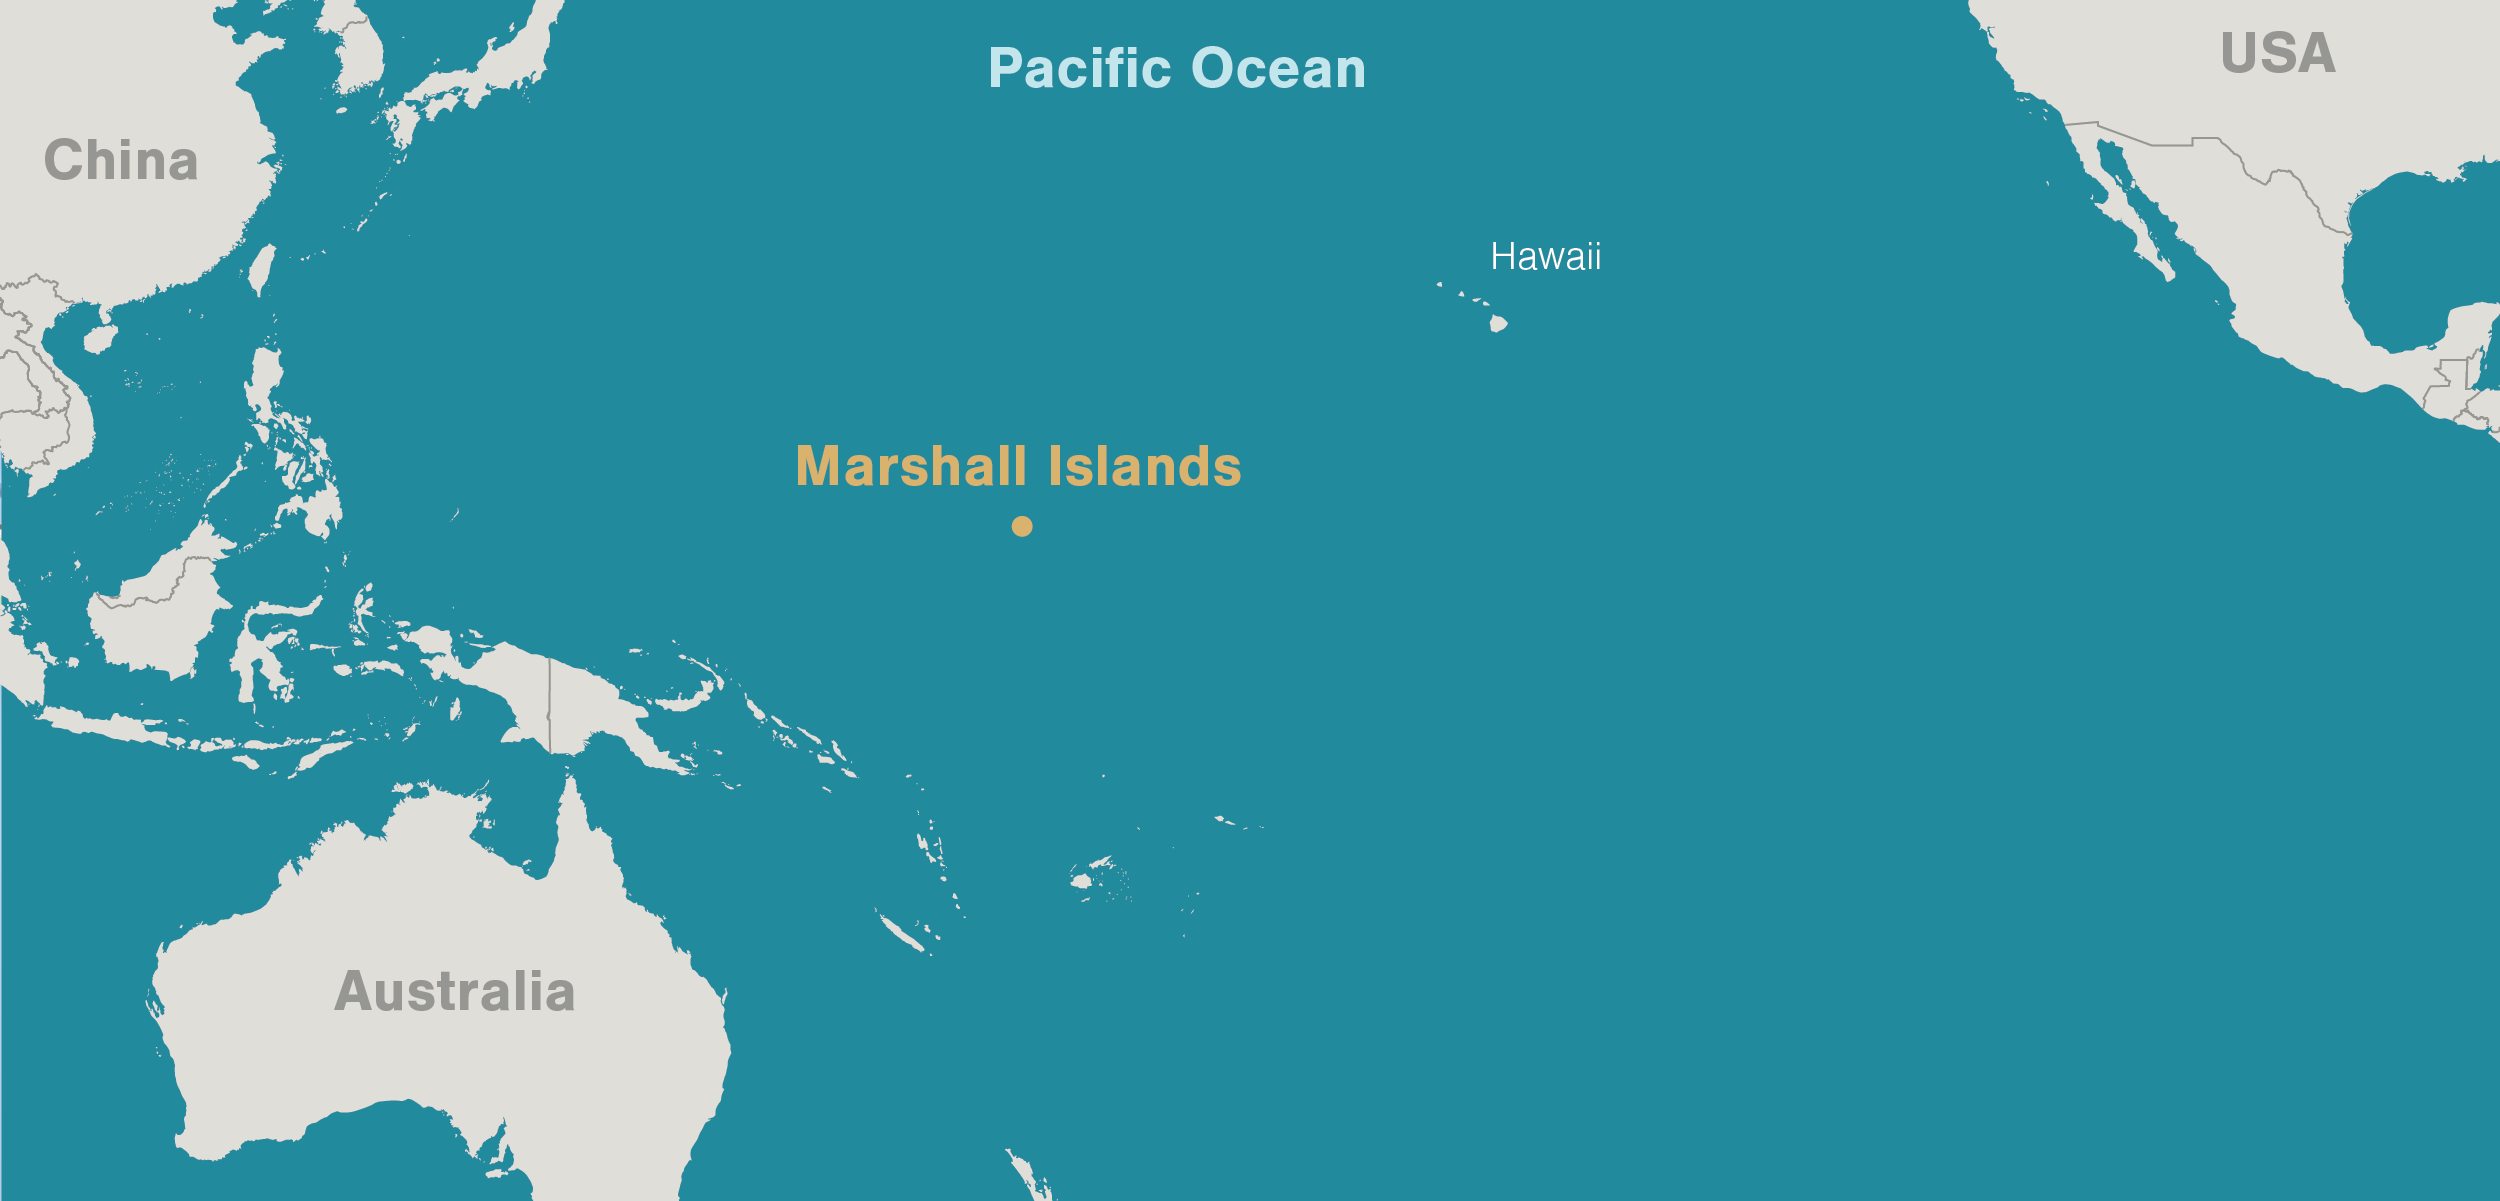 Map Of Marshall Islands And Hawaii